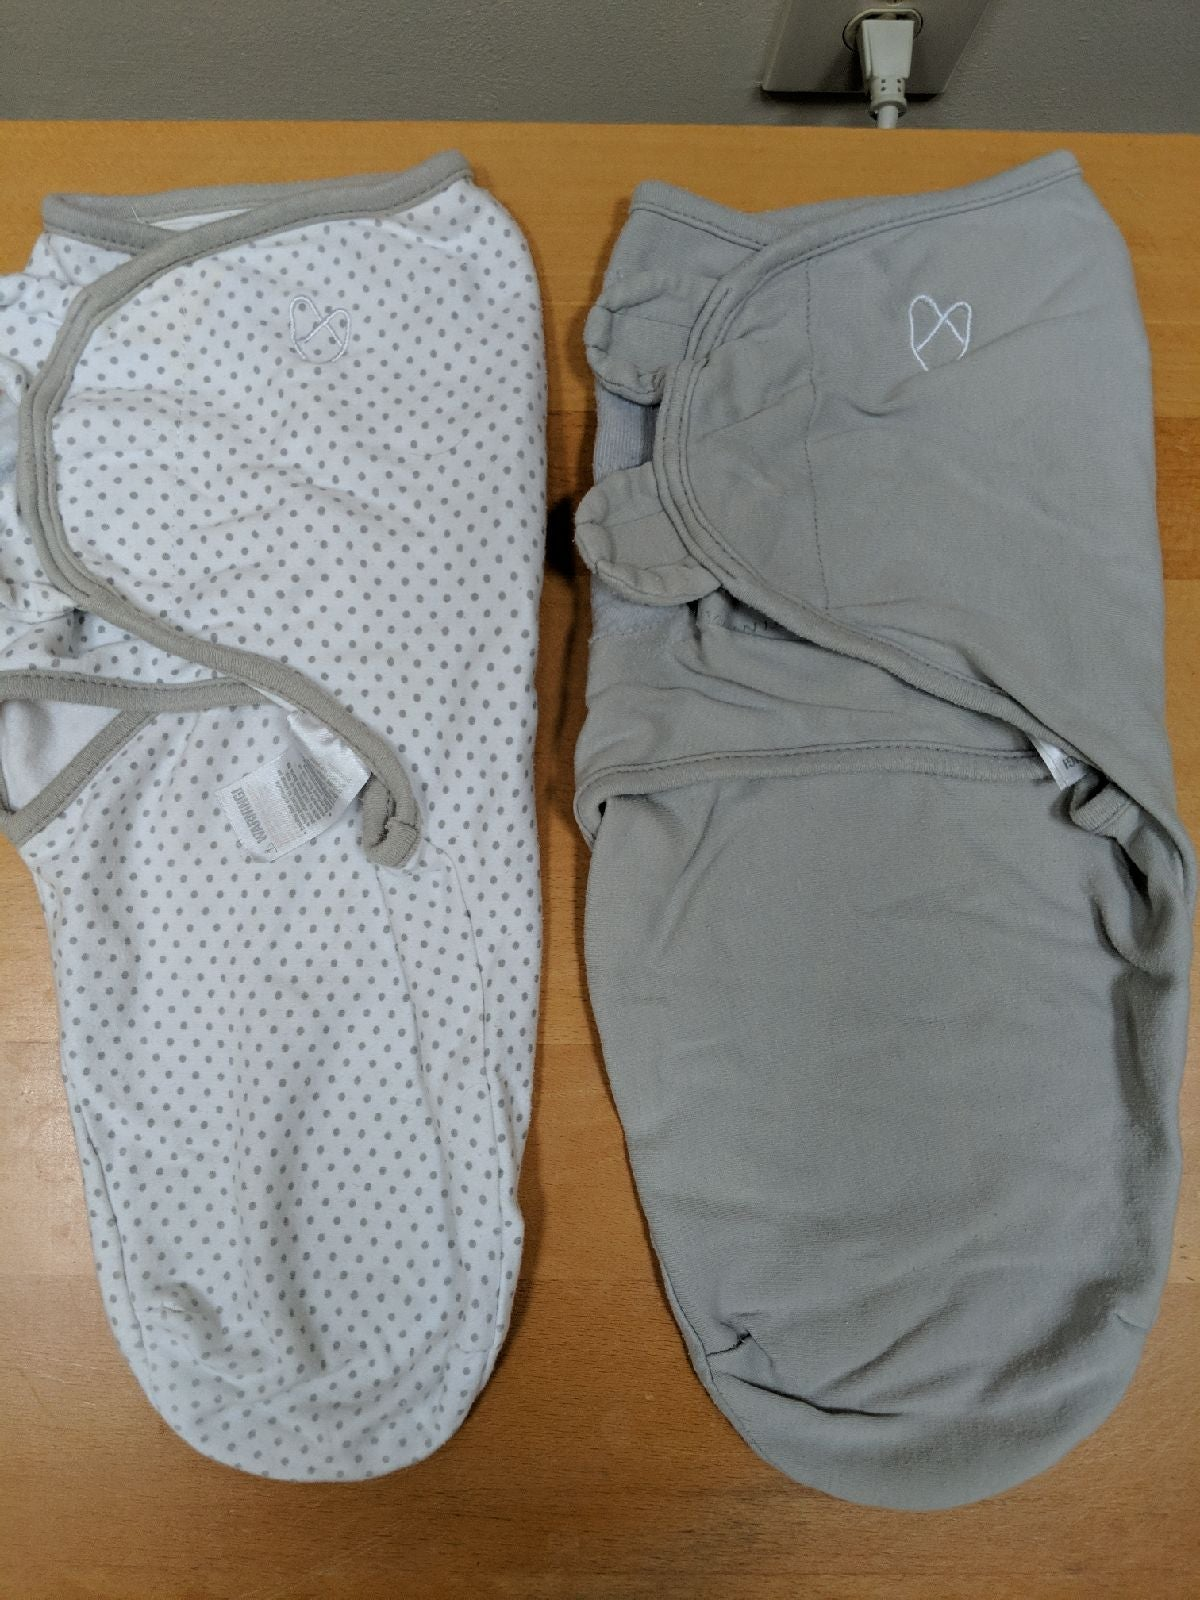 SwaddleMe: 2 swaddles in good condition